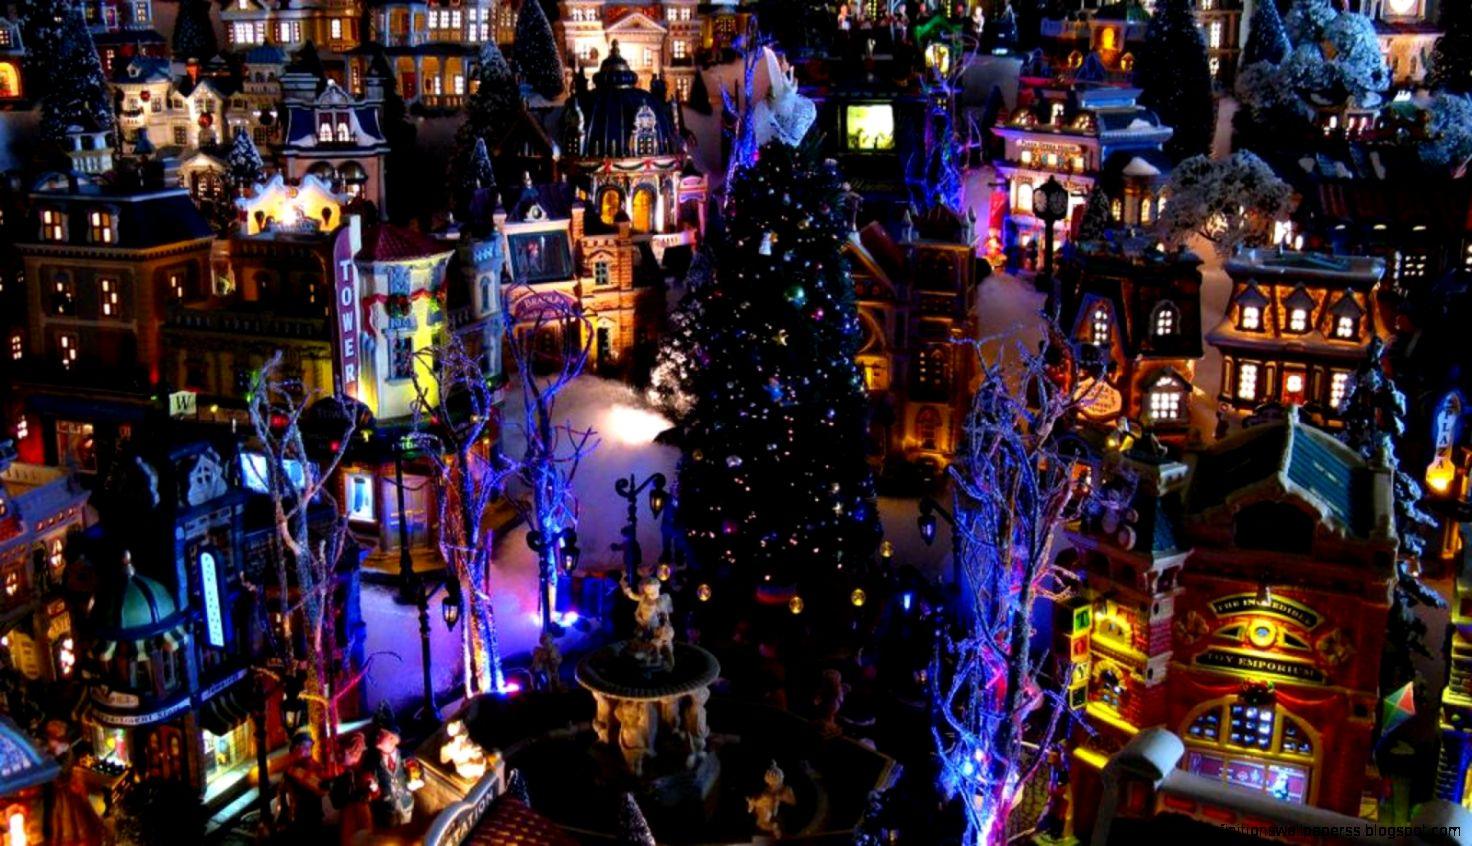 Wallpapers hd architecture christmas in town high - Christmas village wallpaper widescreen ...